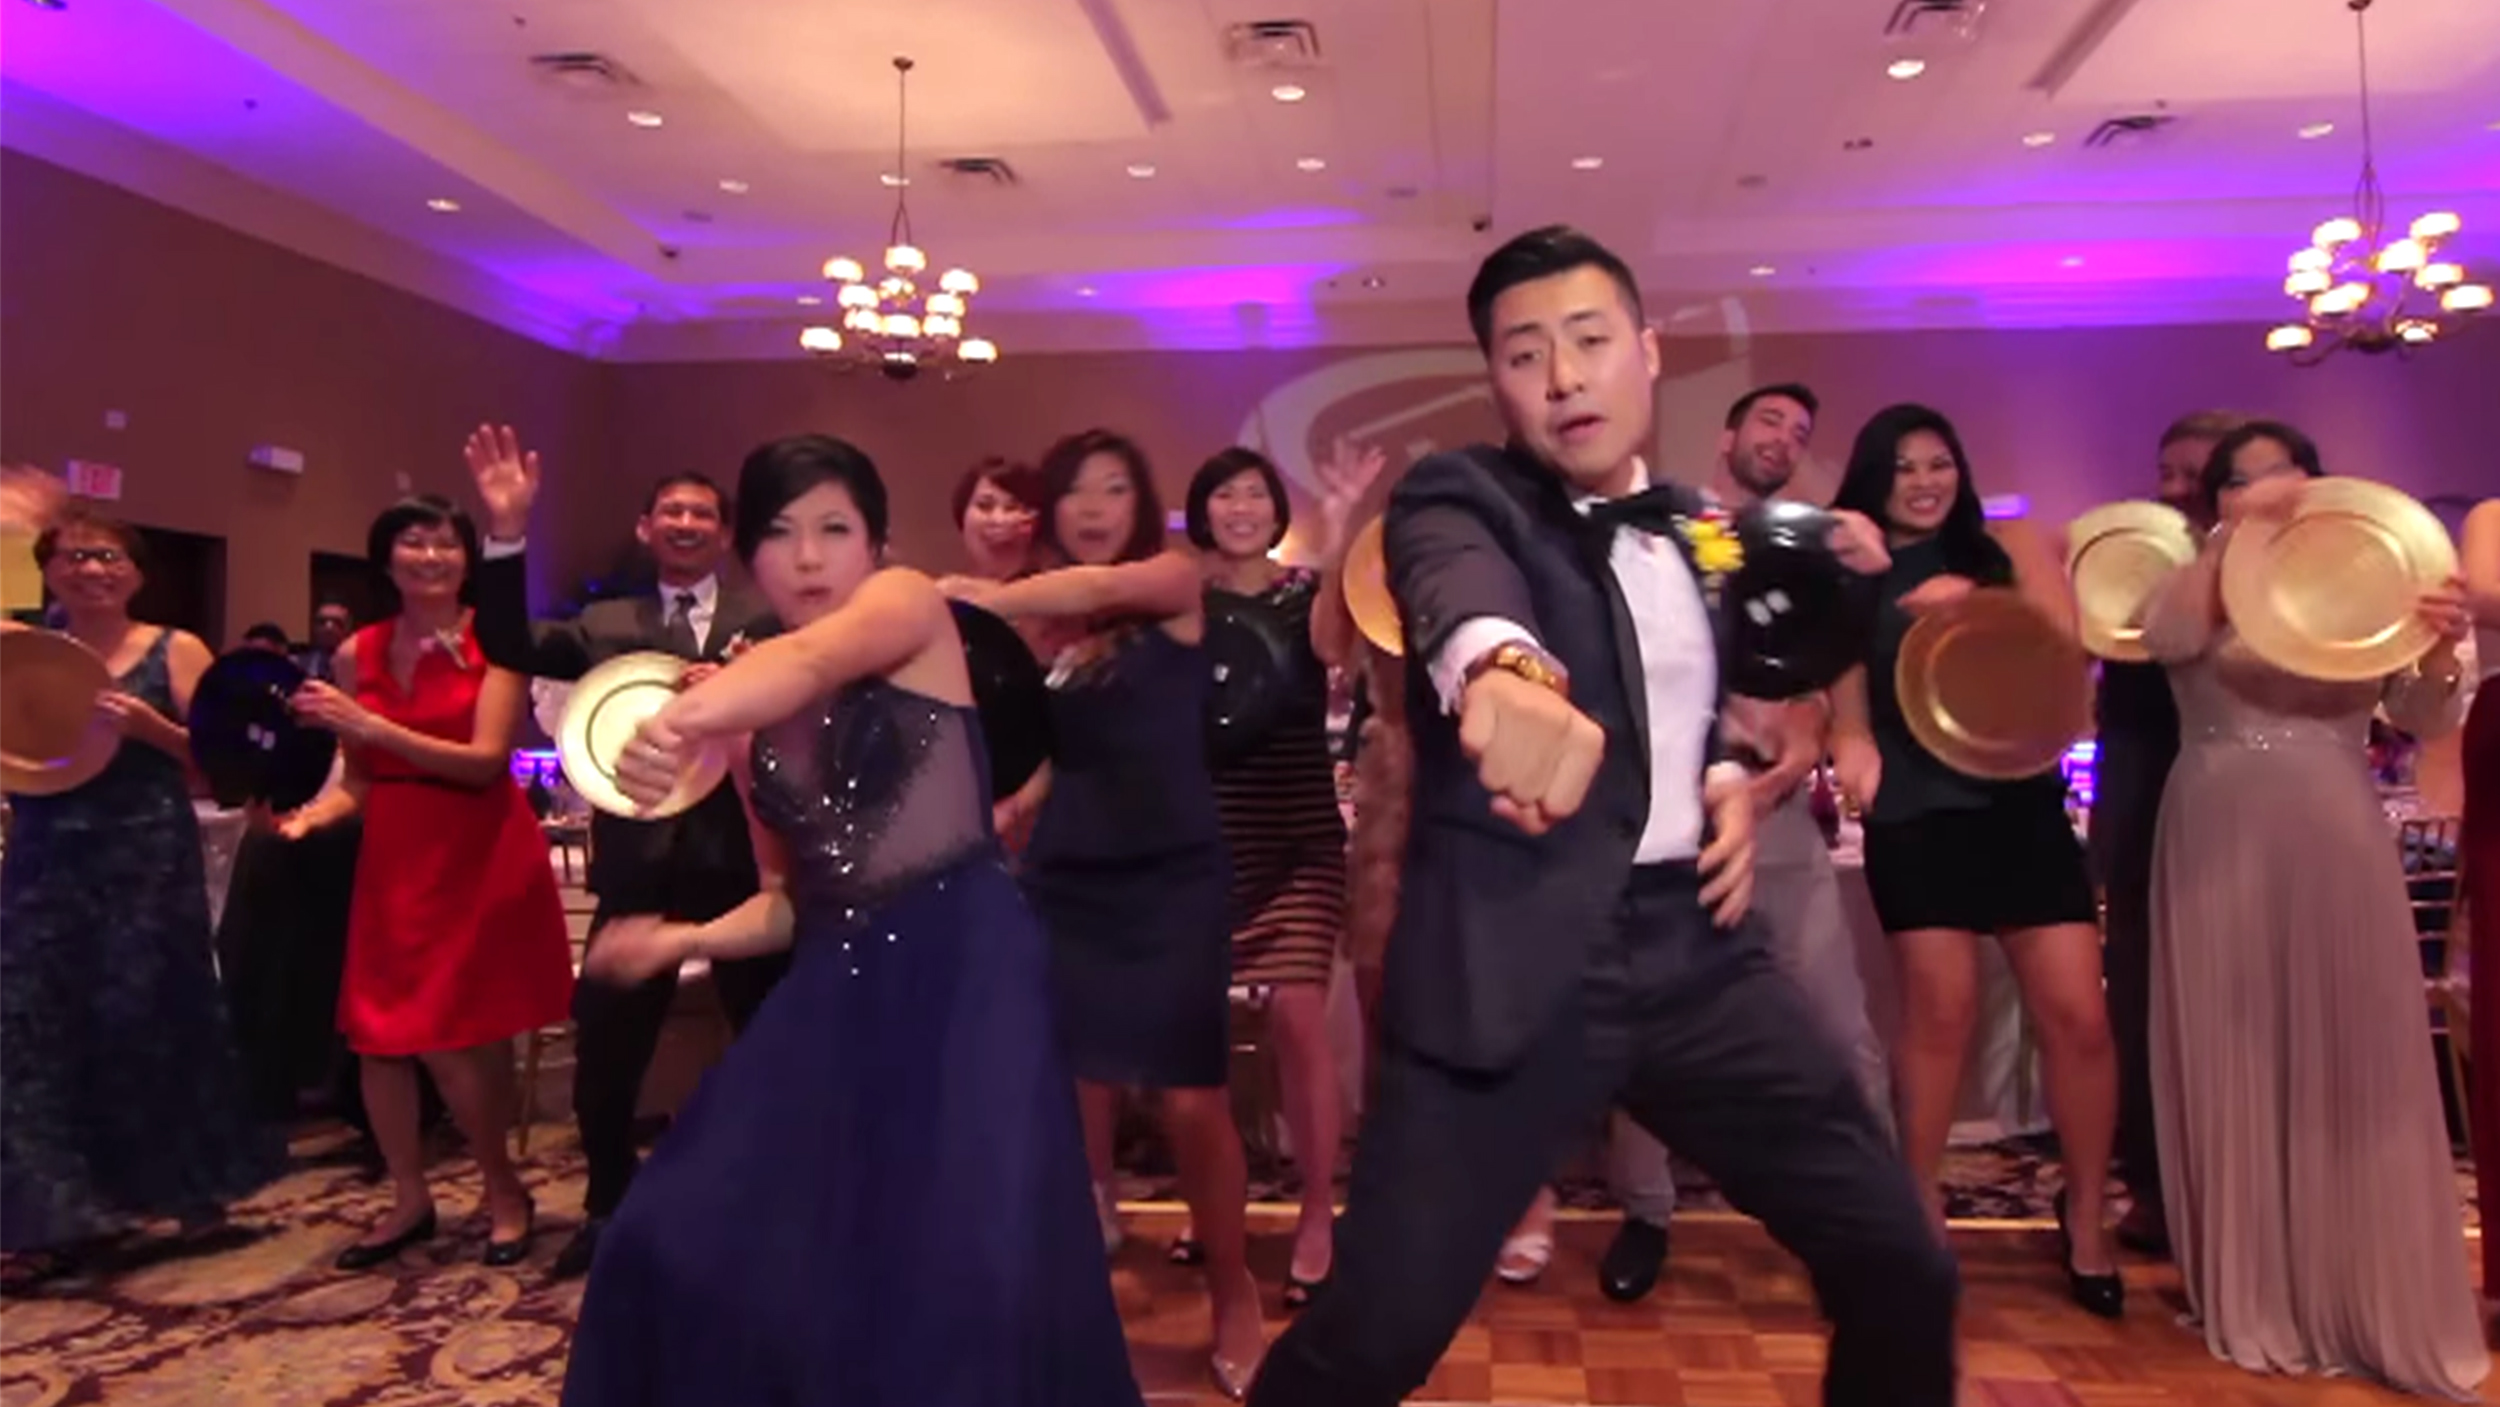 Couple Makes Most Epic Wedding Video Ever 250 Guests 1 Take Tons Of Tunes